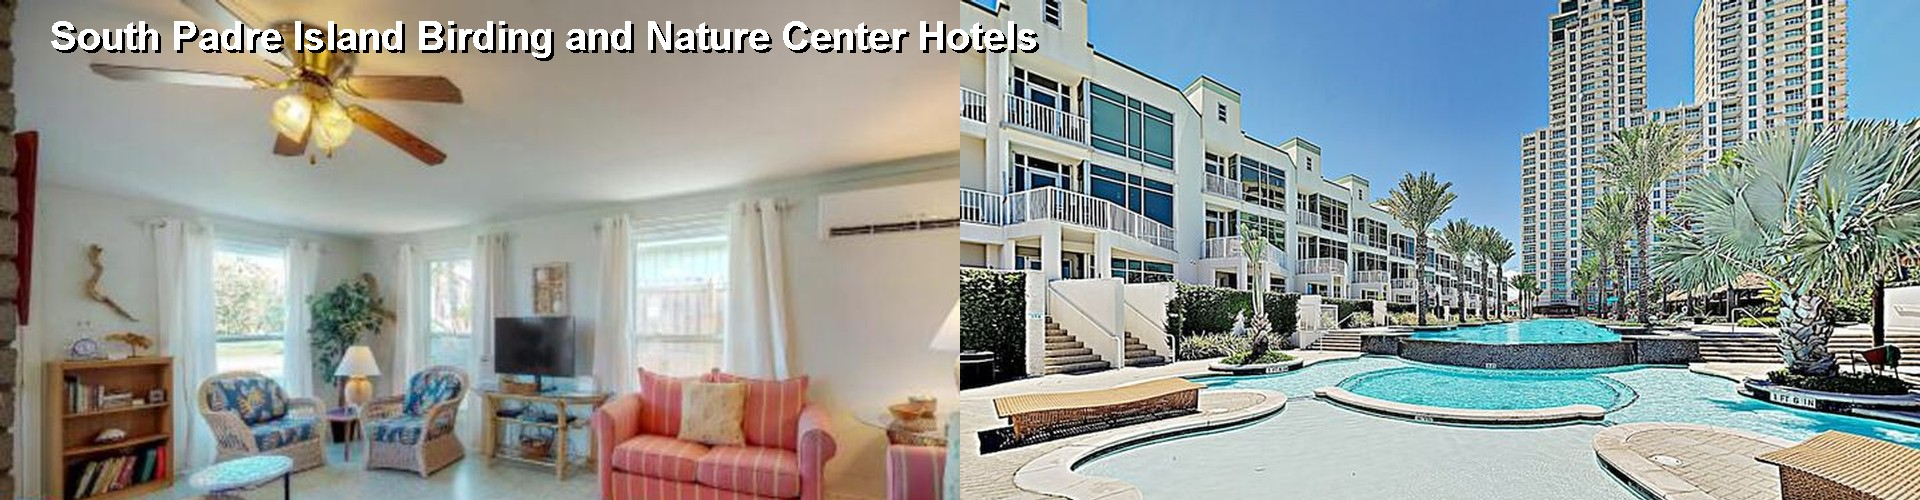 5 Best Hotels near South Padre Island Birding and Nature Center